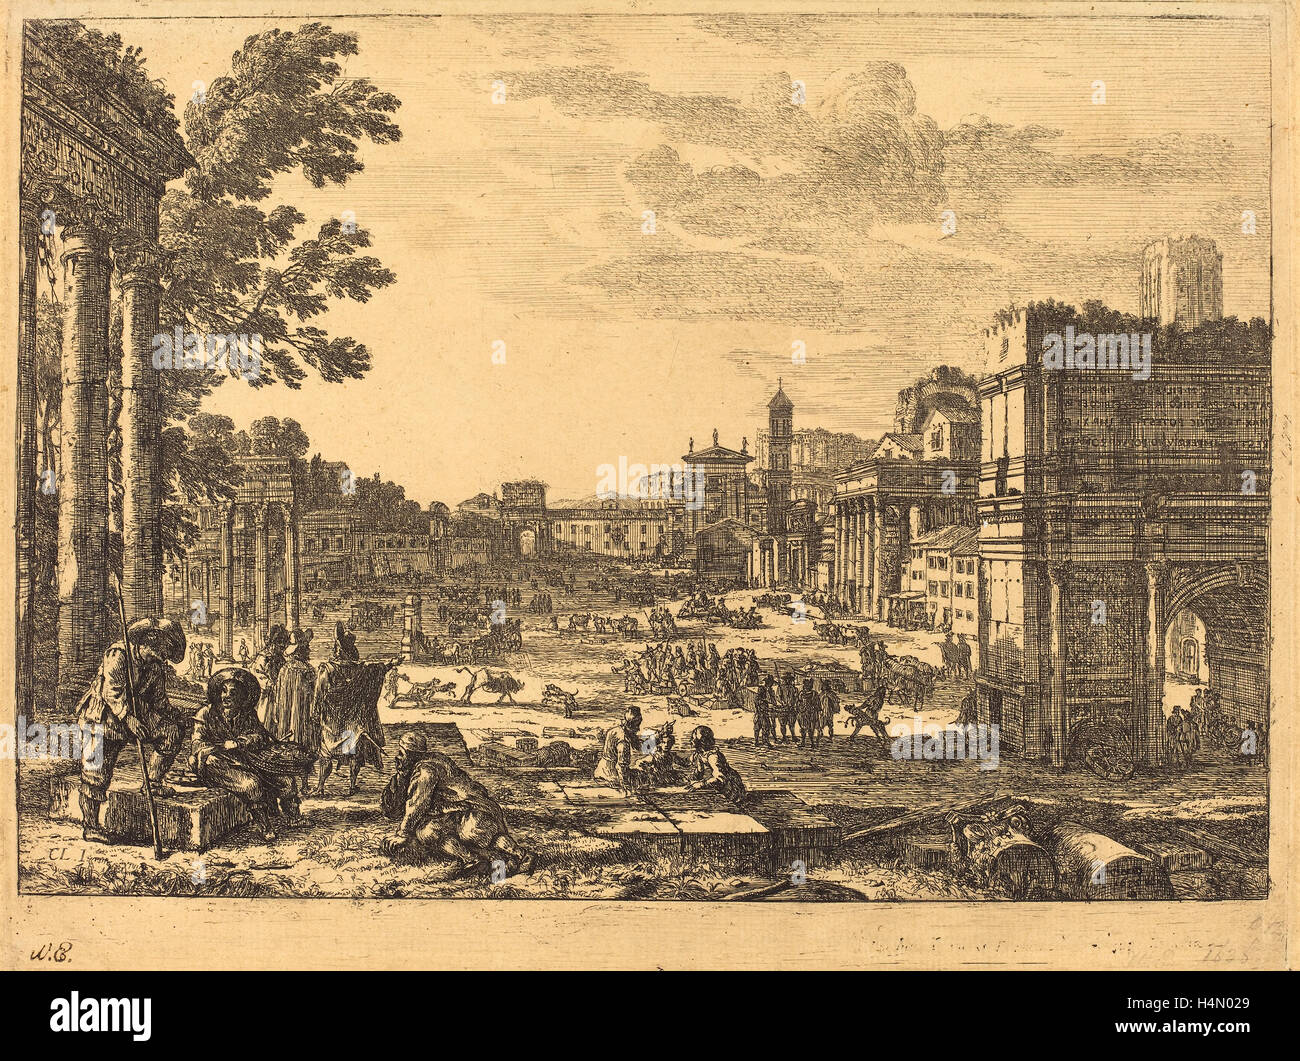 Claude Lorrain (French, 1604-1605 - 1682), The Roman Forum (Le Campo Vaccino), 1636, etching Stock Photo